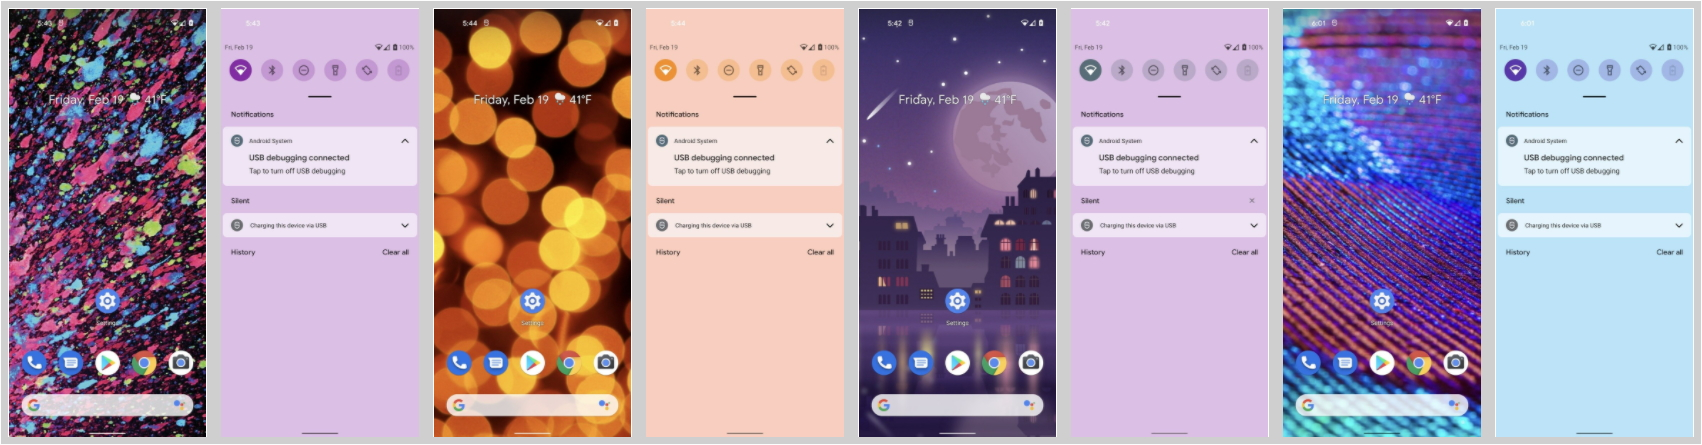 Android-12-Theming-System